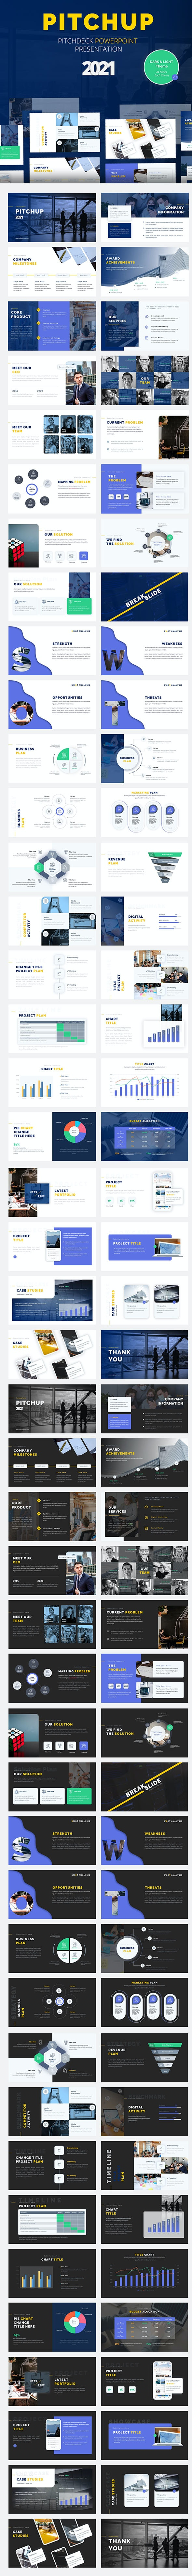 Pitchup – Pitch Deck Powerpoint Template - Pitch Deck PowerPoint Templates